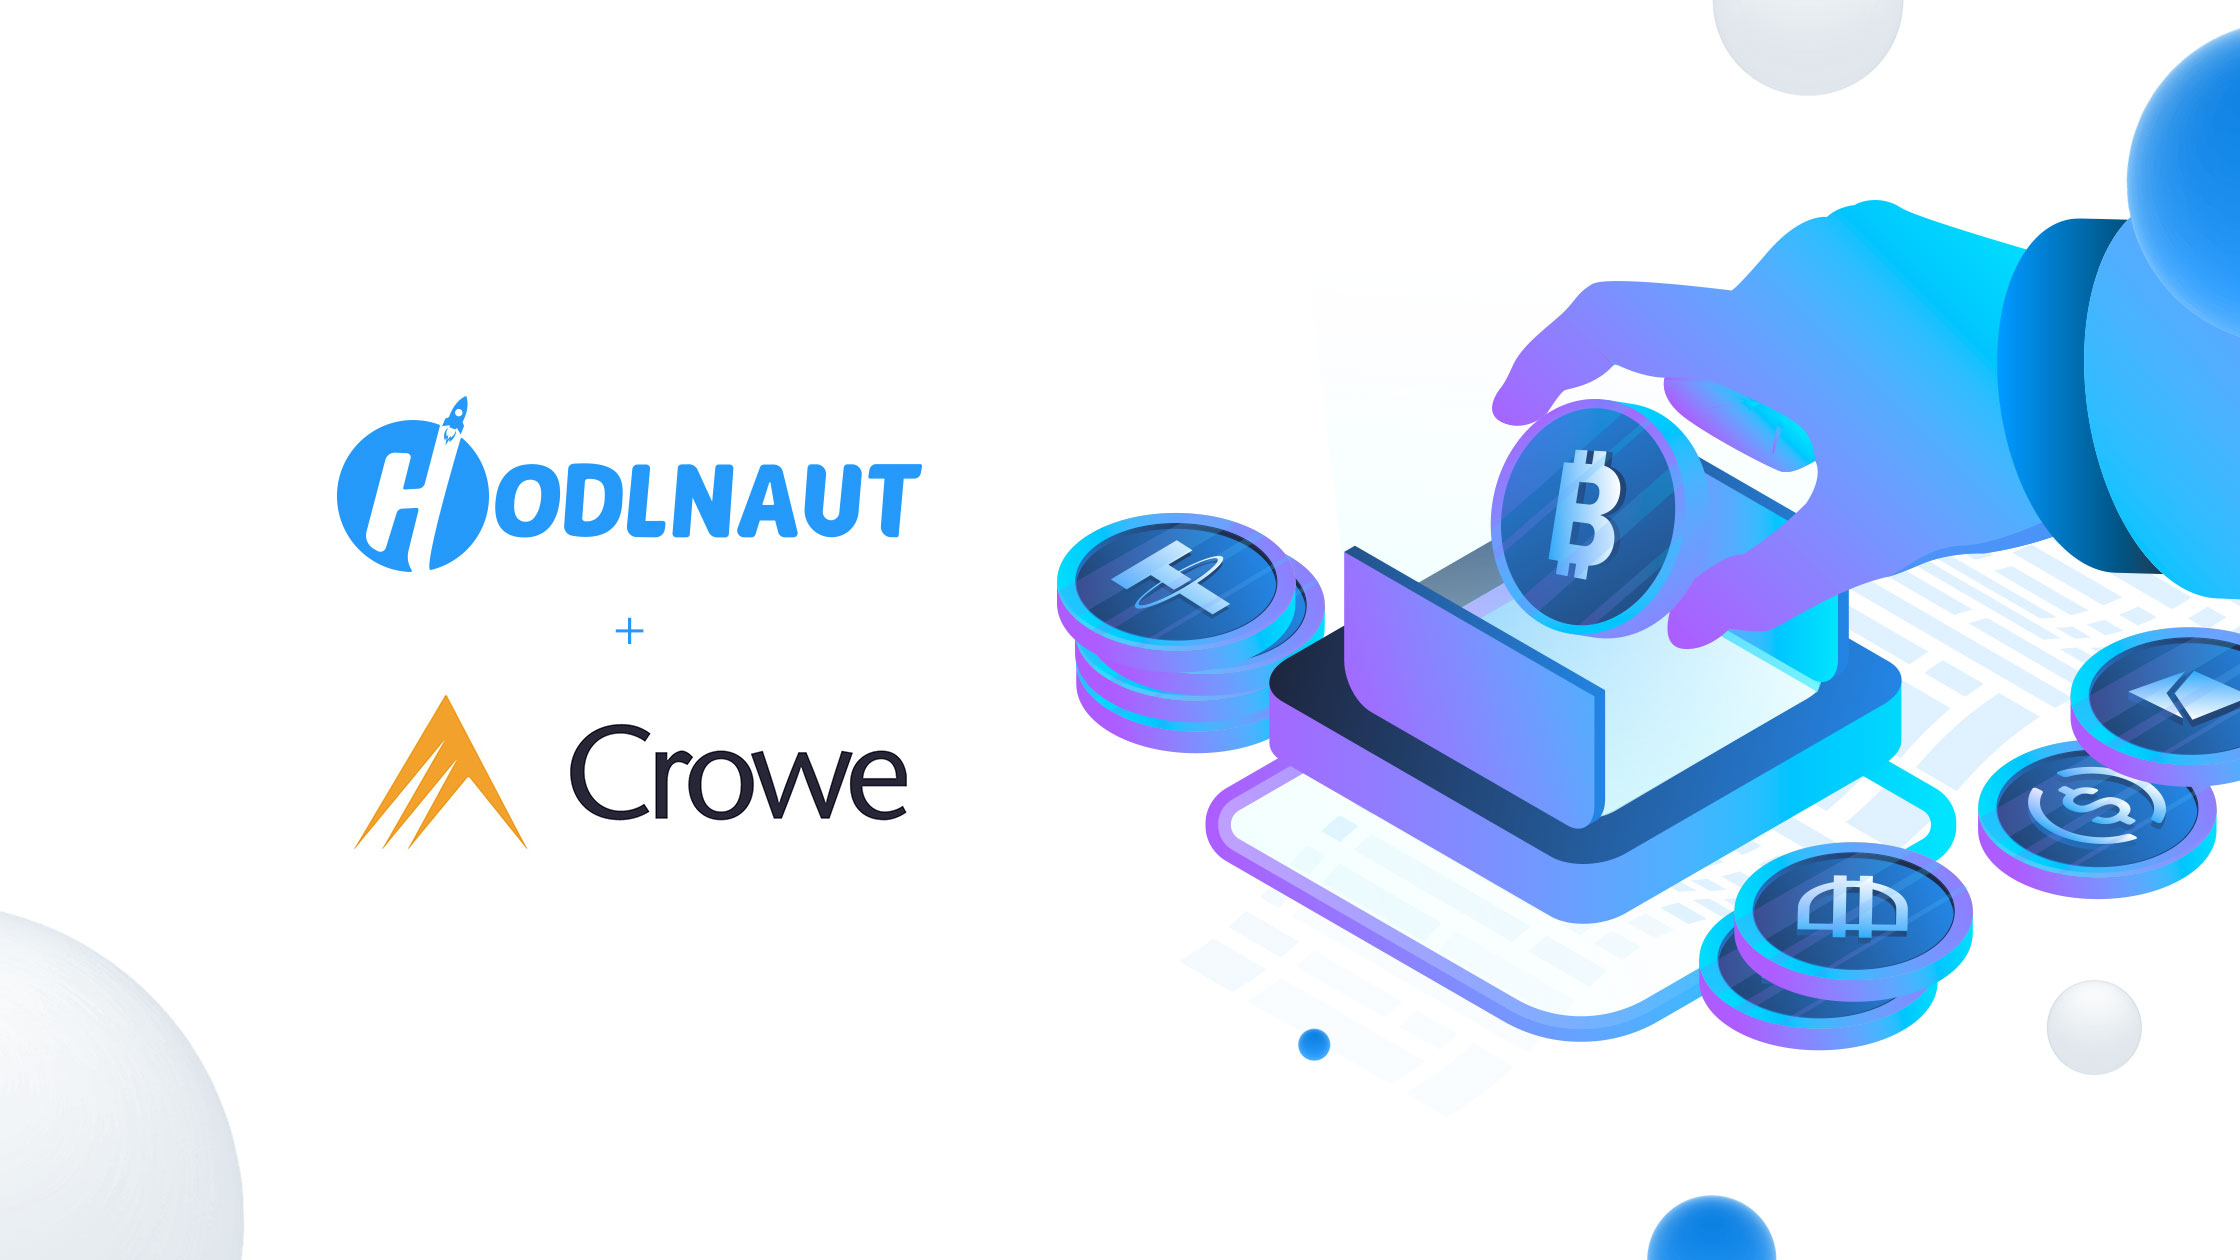 Hodlnaut Announces Independent Verification of US$234M of Crypto Assets by Crowe Singapore